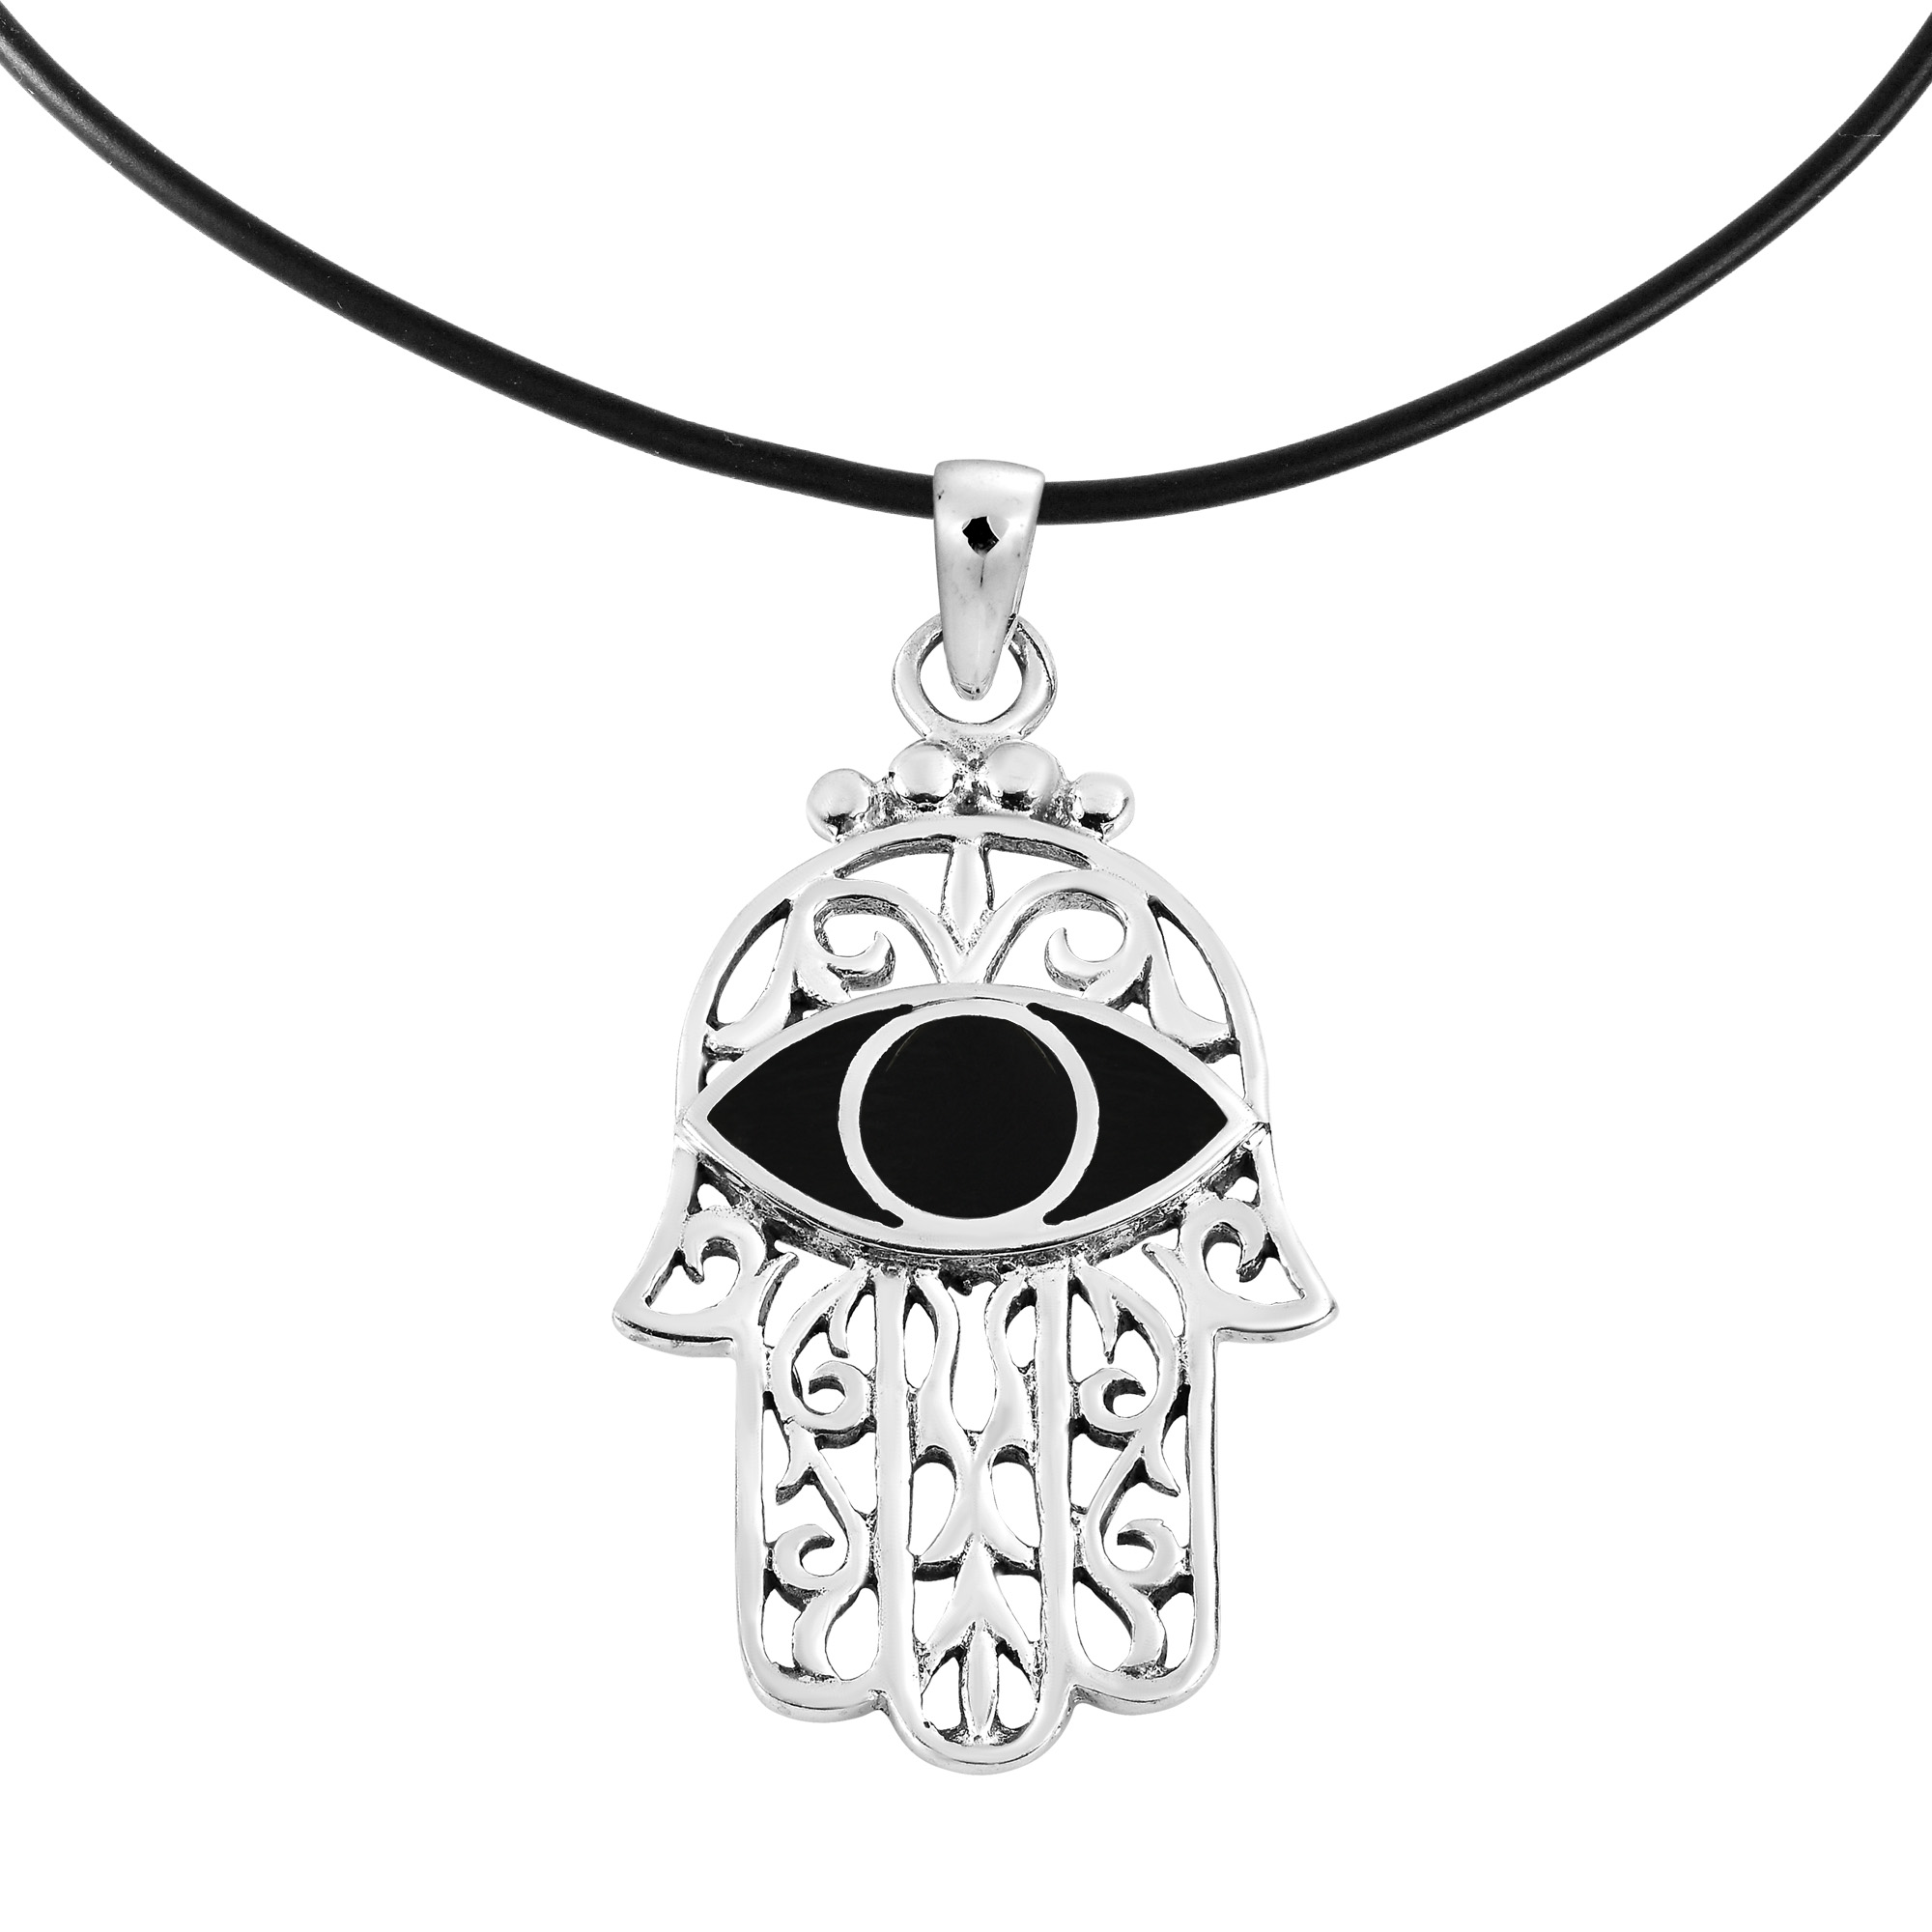 Dainty Hamsa Hand Onyx Inlaid Sterling Silver On Black Necklace